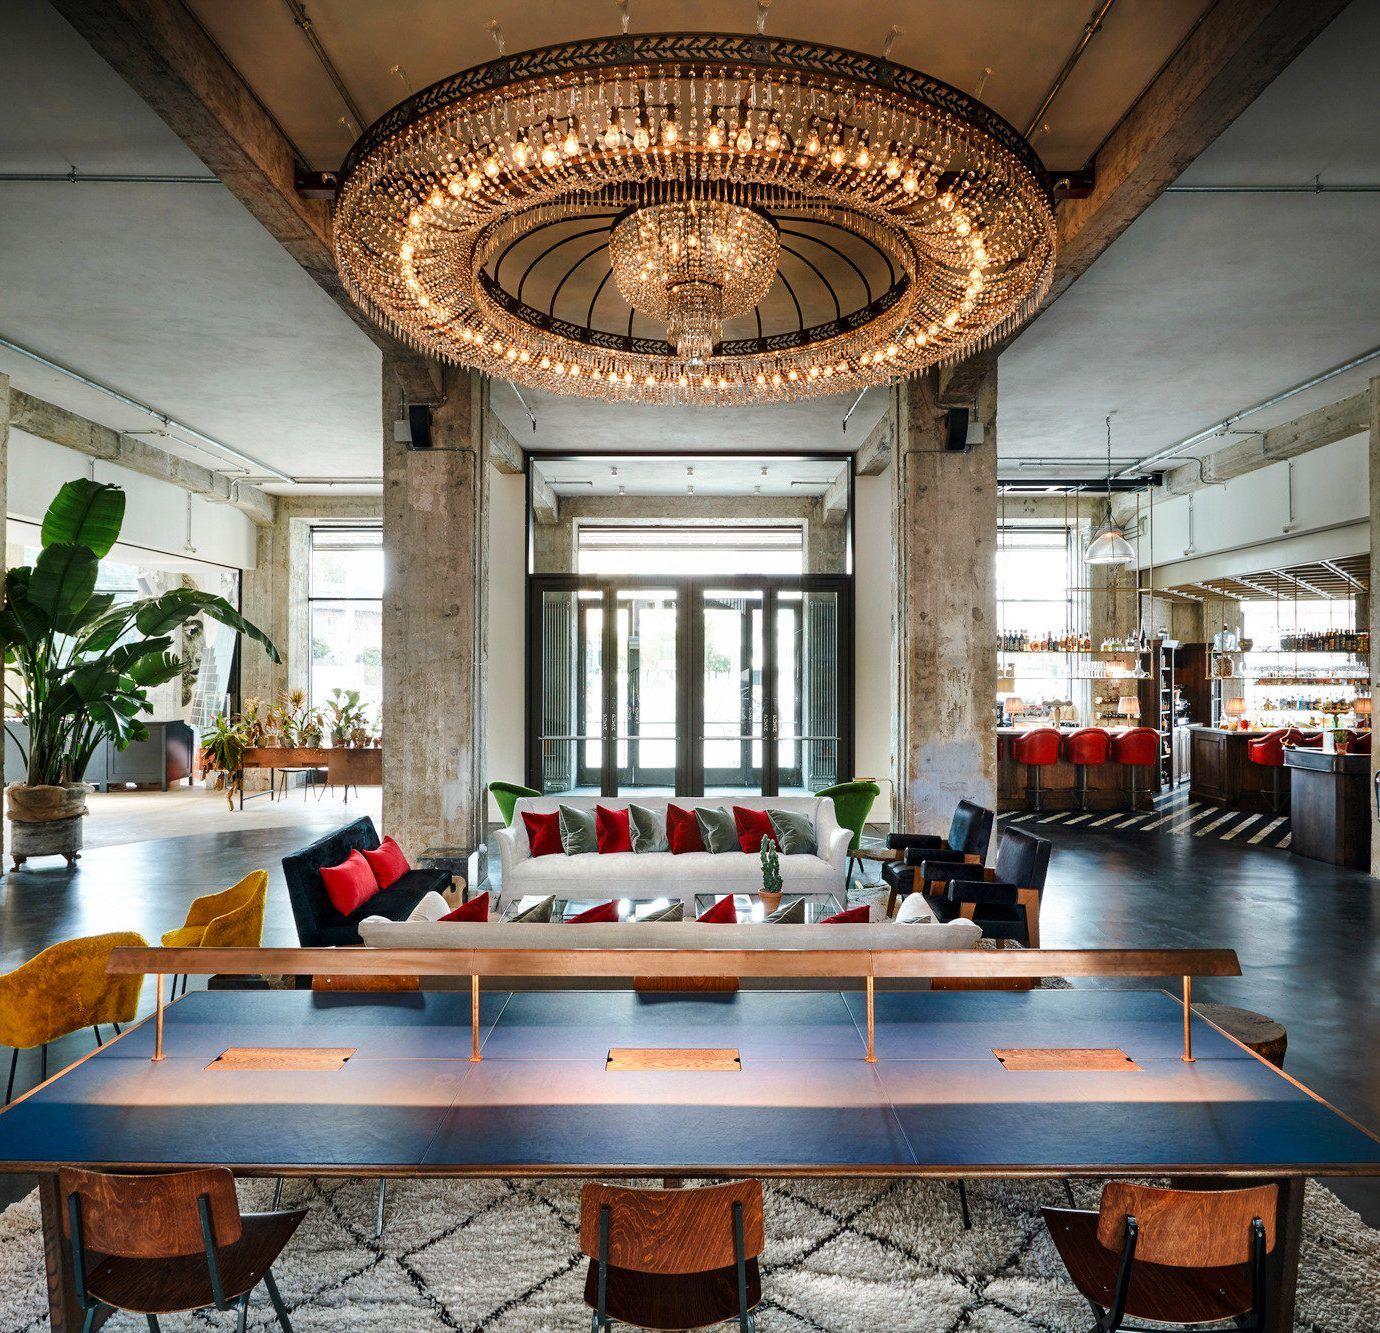 Berlin Boutique Hotels Germany Hotels Luxury Travel table indoor floor room ceiling interior design furniture Lobby dining table dining room